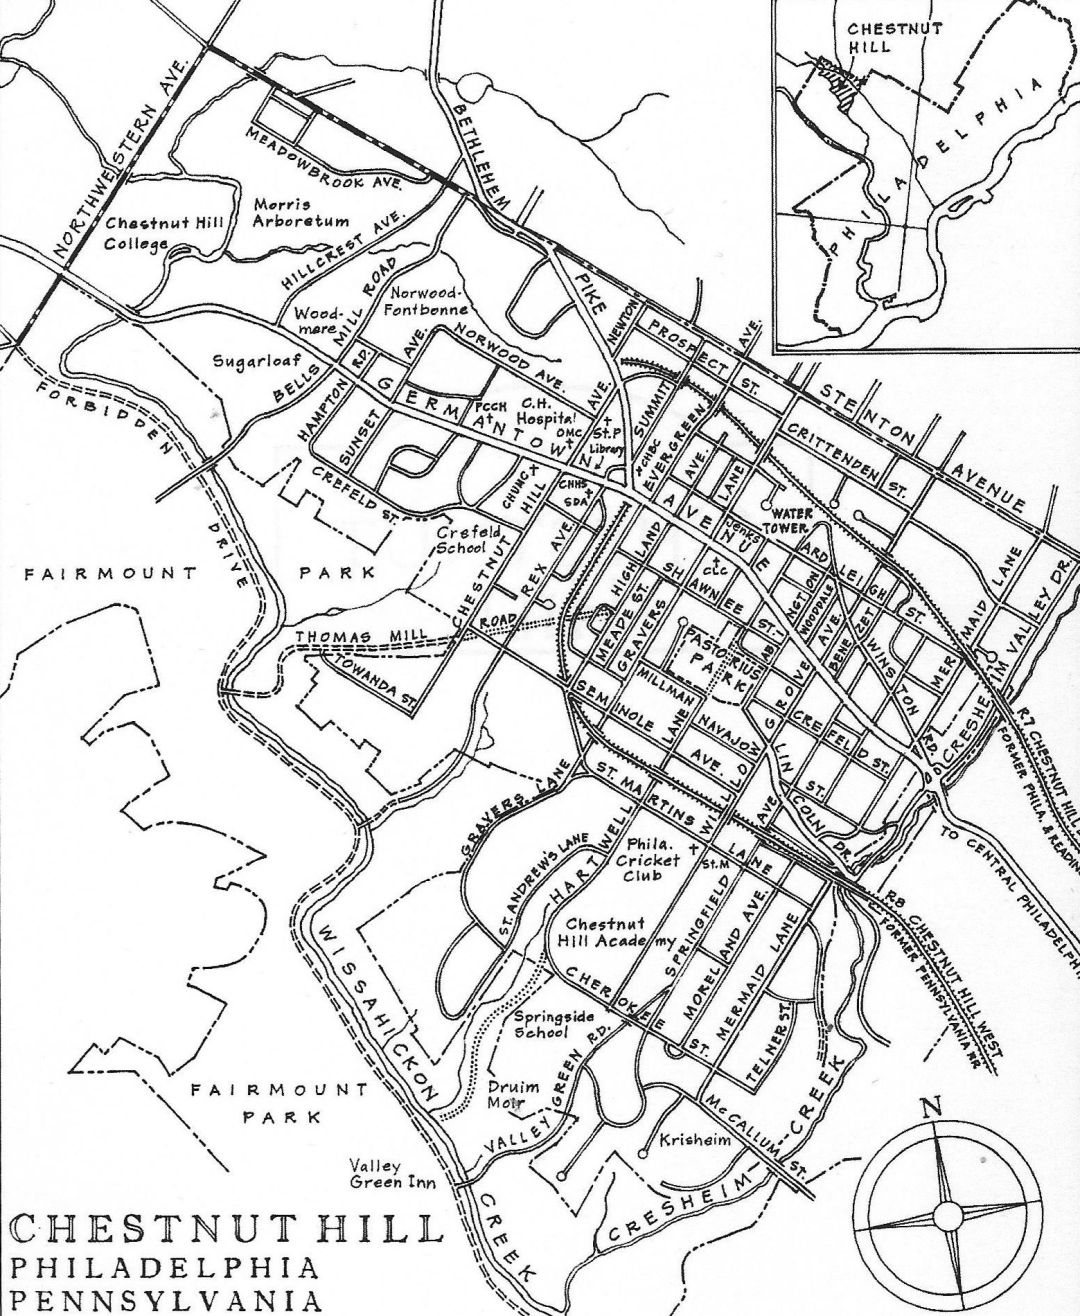 1967 – Chestnut Hill Historical Society (CHHS) is incorporated